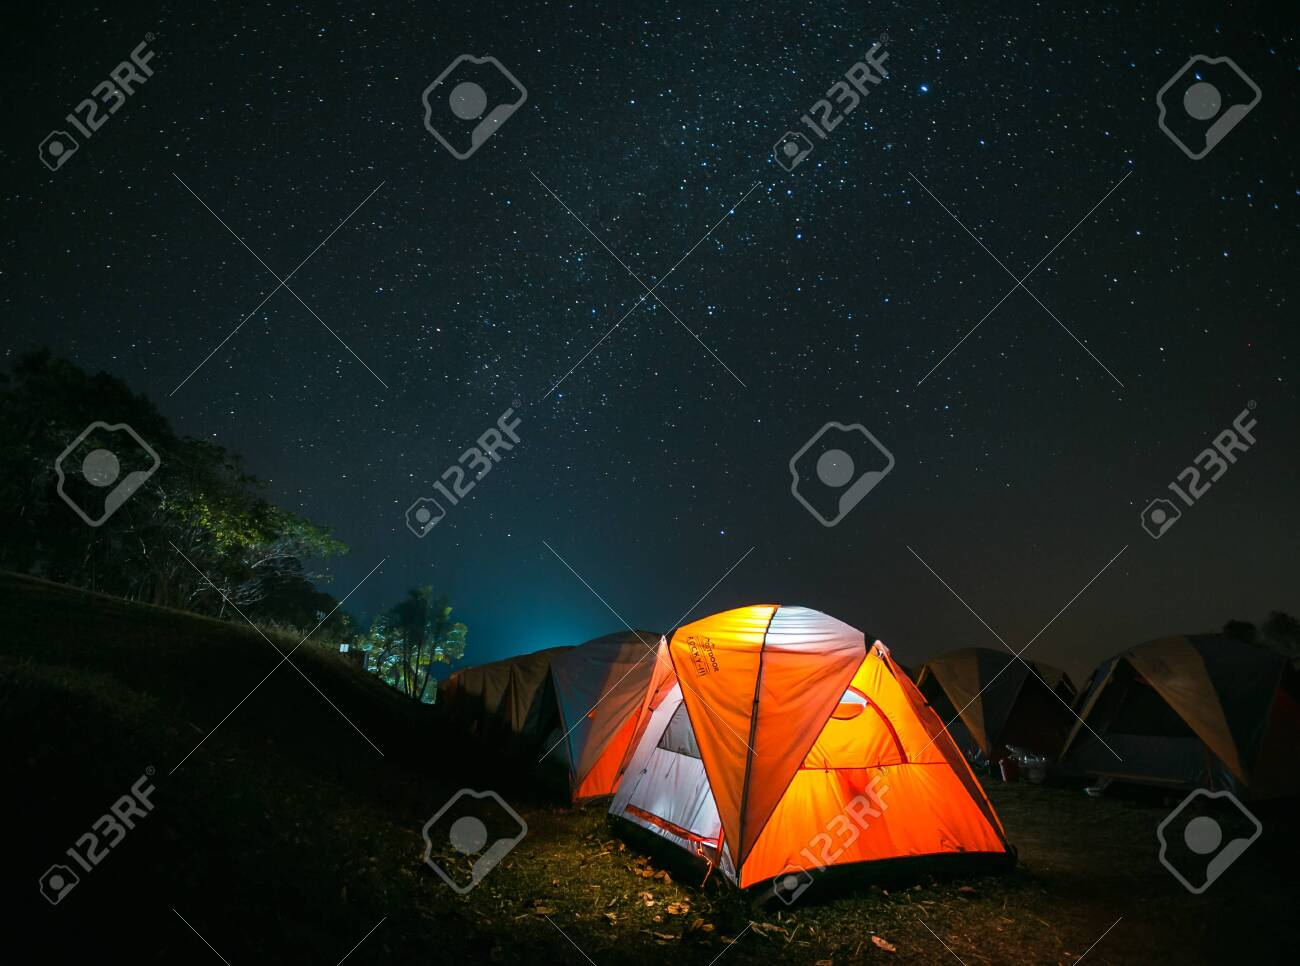 Traveling and camping concept - camp tent at night under a sky full of stars. - 141957333